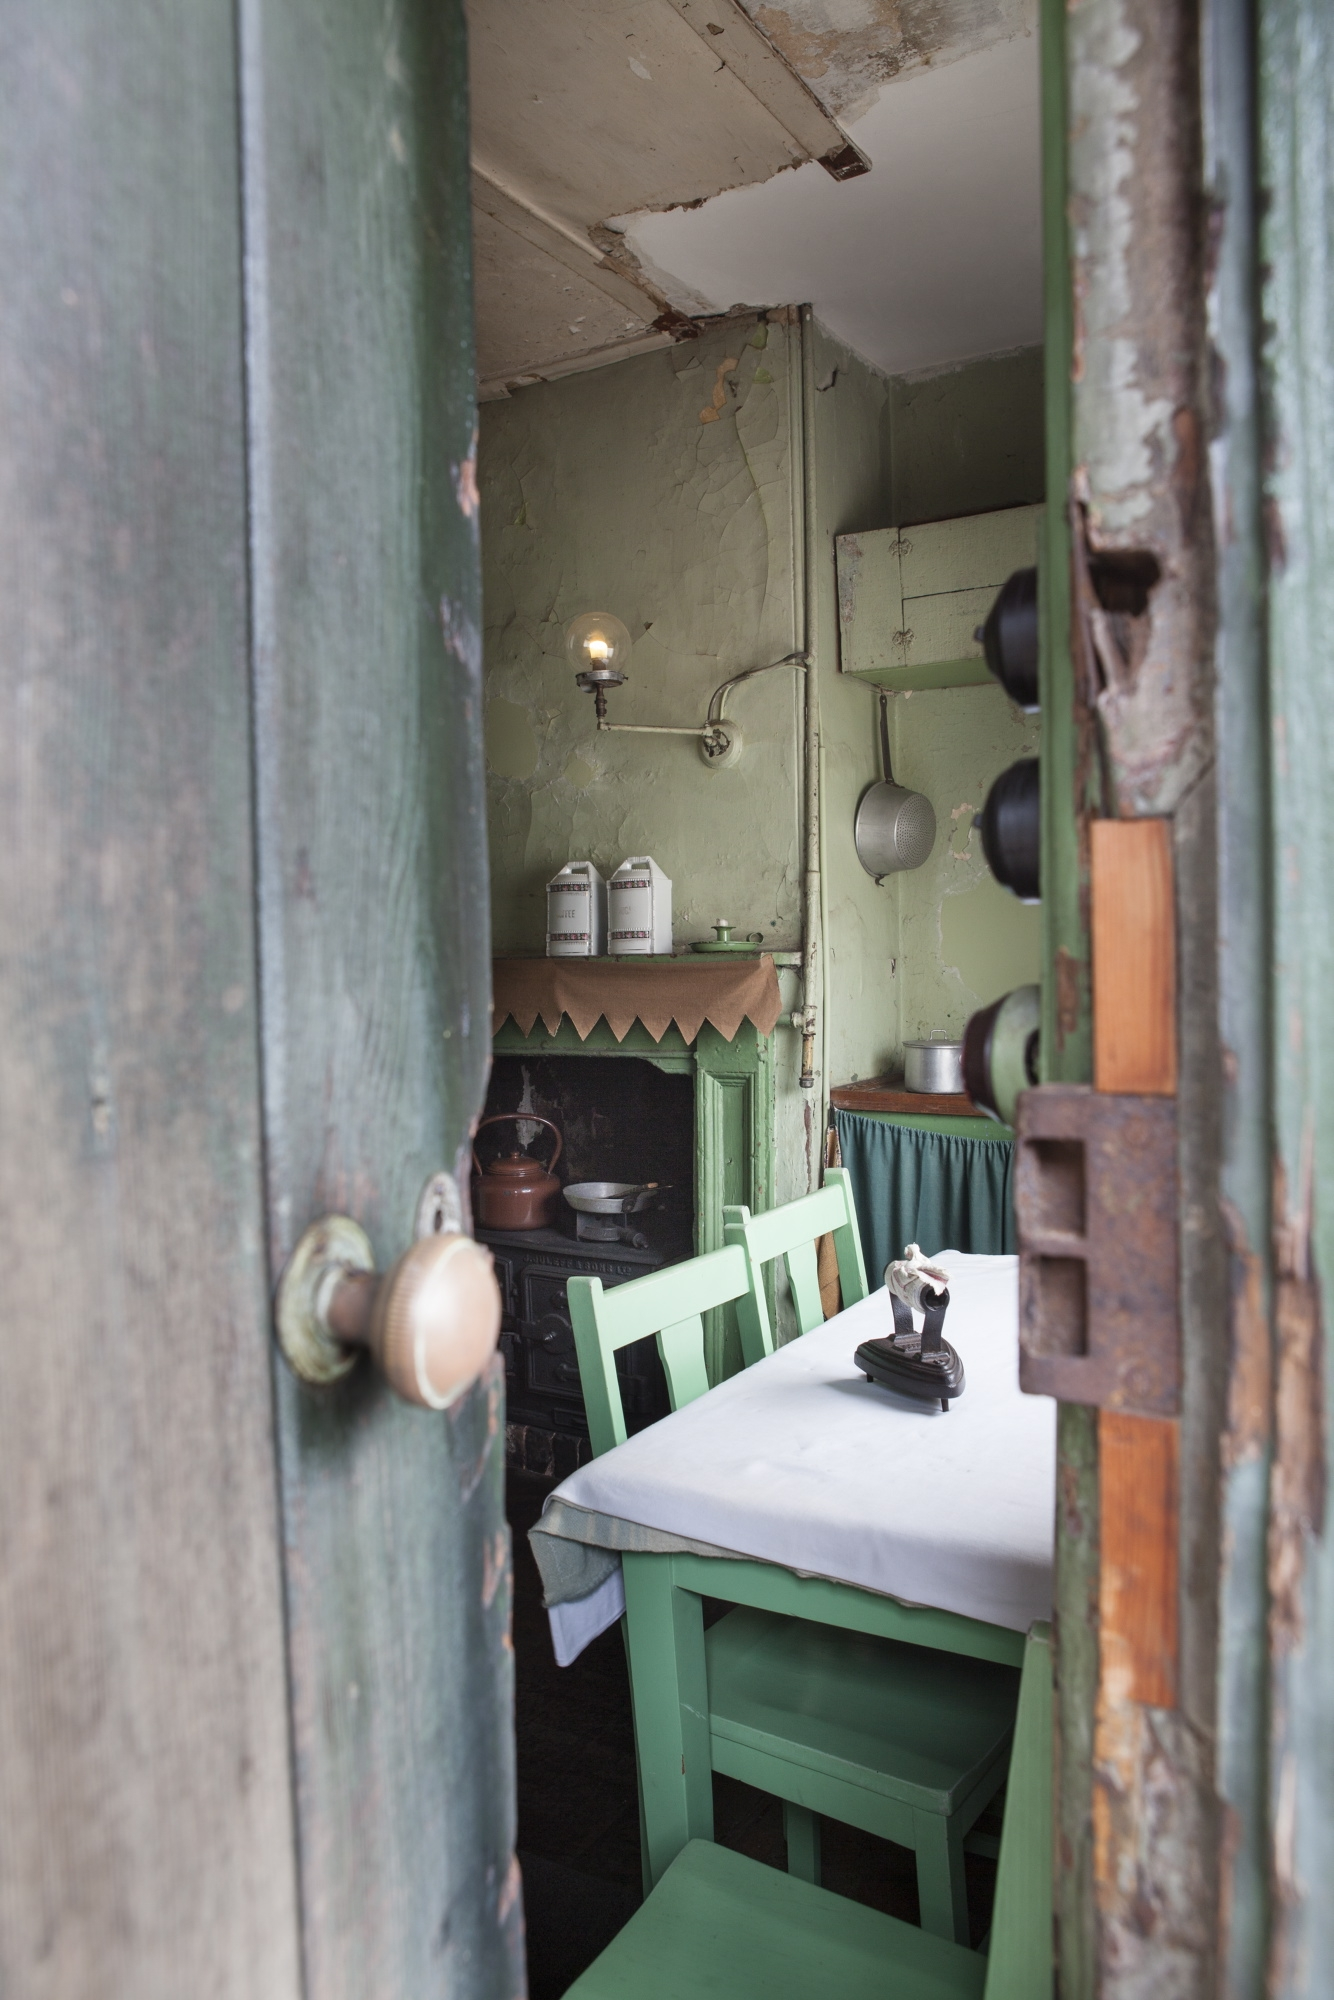 Looking through doorway at table with white tablecloth and old fashioned iron on top, with pale green chairs behind and view of fireplace with light fitting above.